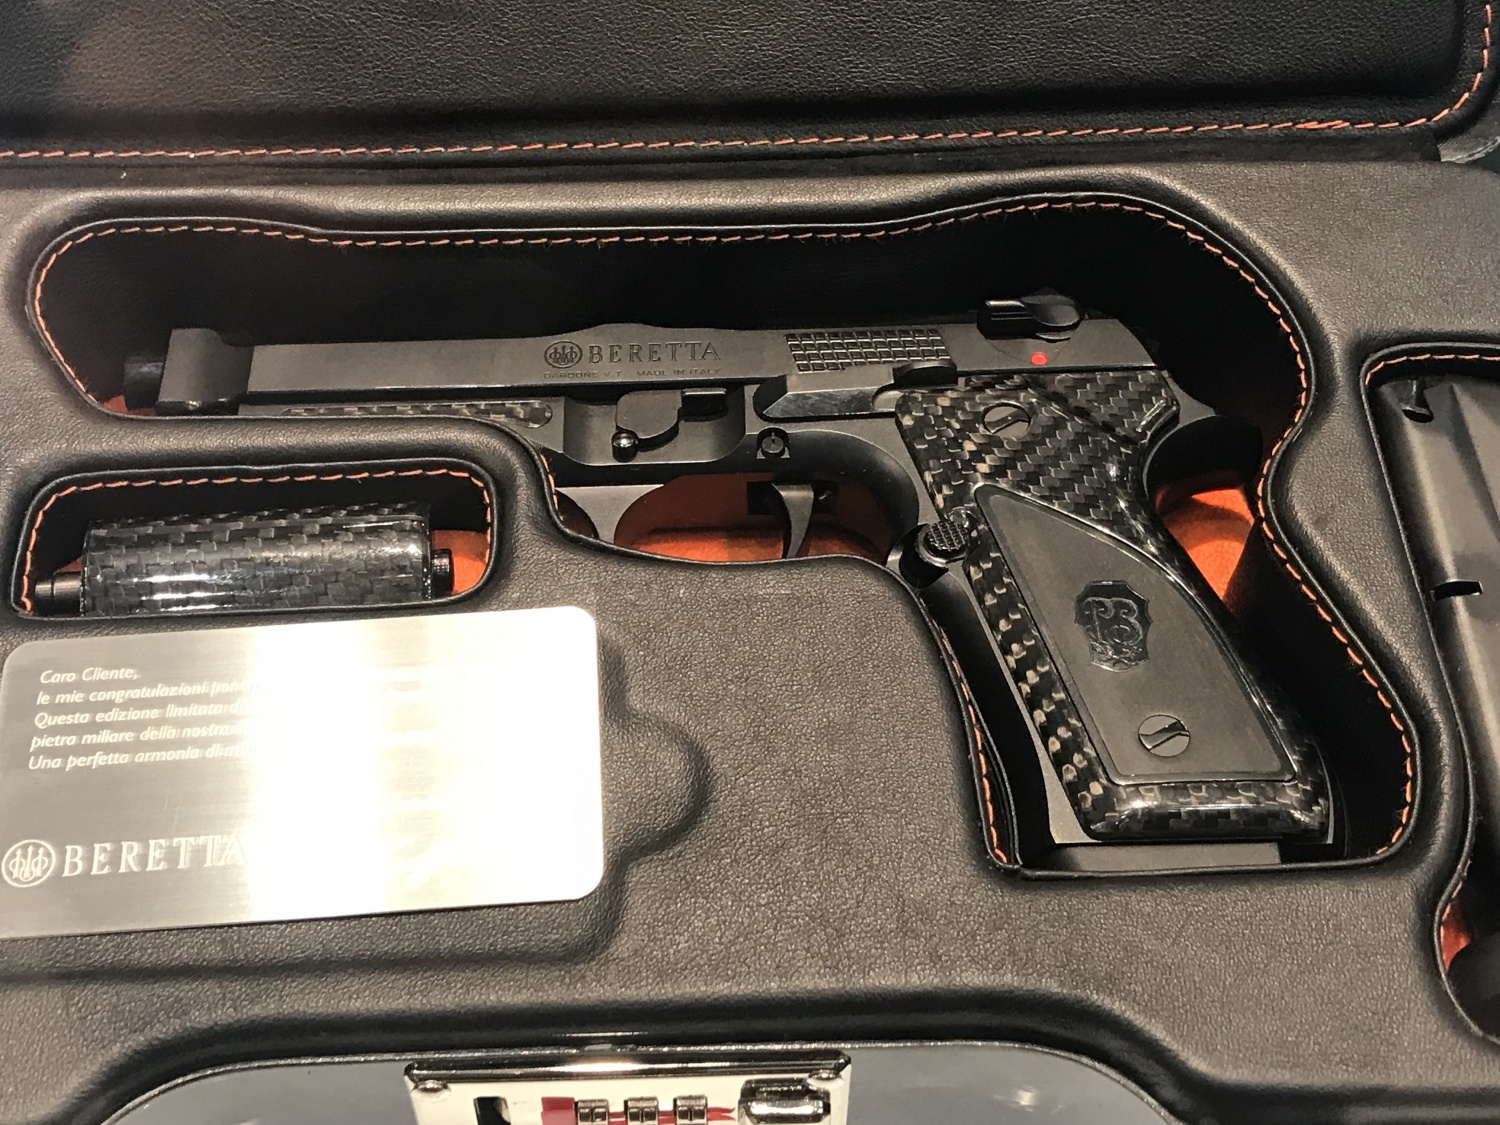 Fusion Black beretta nestled in its case.